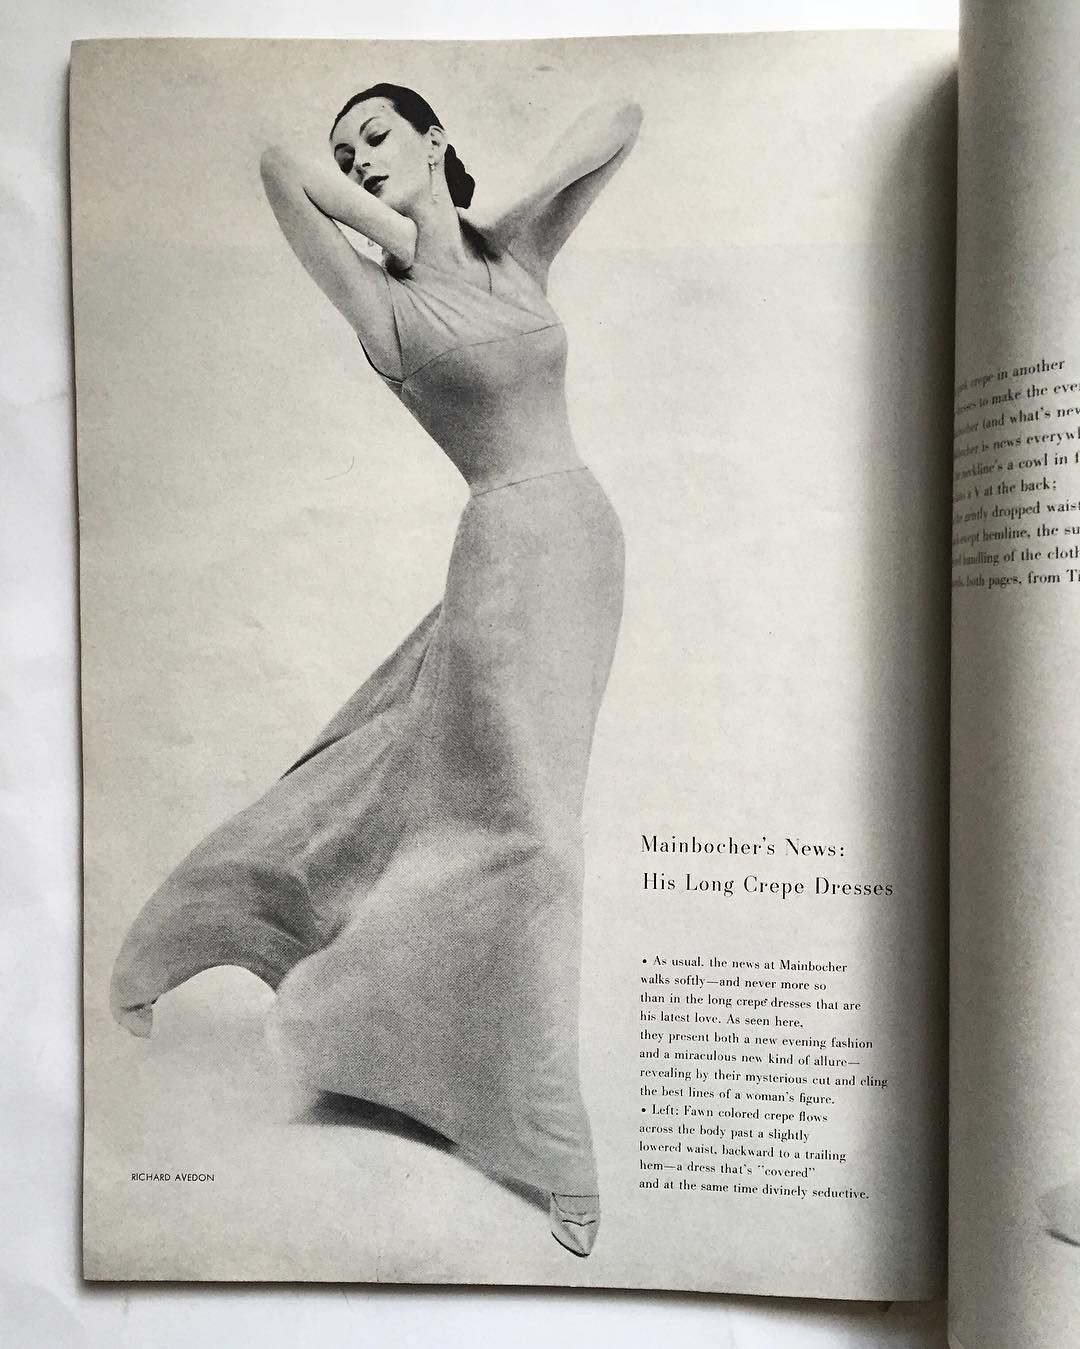 The statuesque silhouette of #Dovima wearing #Mainbocher long crepe dress, by #RichardAvedon - #HarpersBazaar December 1956 from my collection  #avedon #bazaar #vintage #vintagebazaar #vintagemagazine #vintagefashion #vintagecouture #fashion #fashionphotography #fashionhistory #dresshistory #dress #fashionresearch #histoiredelamode #chic #style #dianavreeland #carmelsnow #covergirl #beauty #americancouture #couture #fashionphotographer #silhouette #fiftiesfashion  @harpersbazaarus…